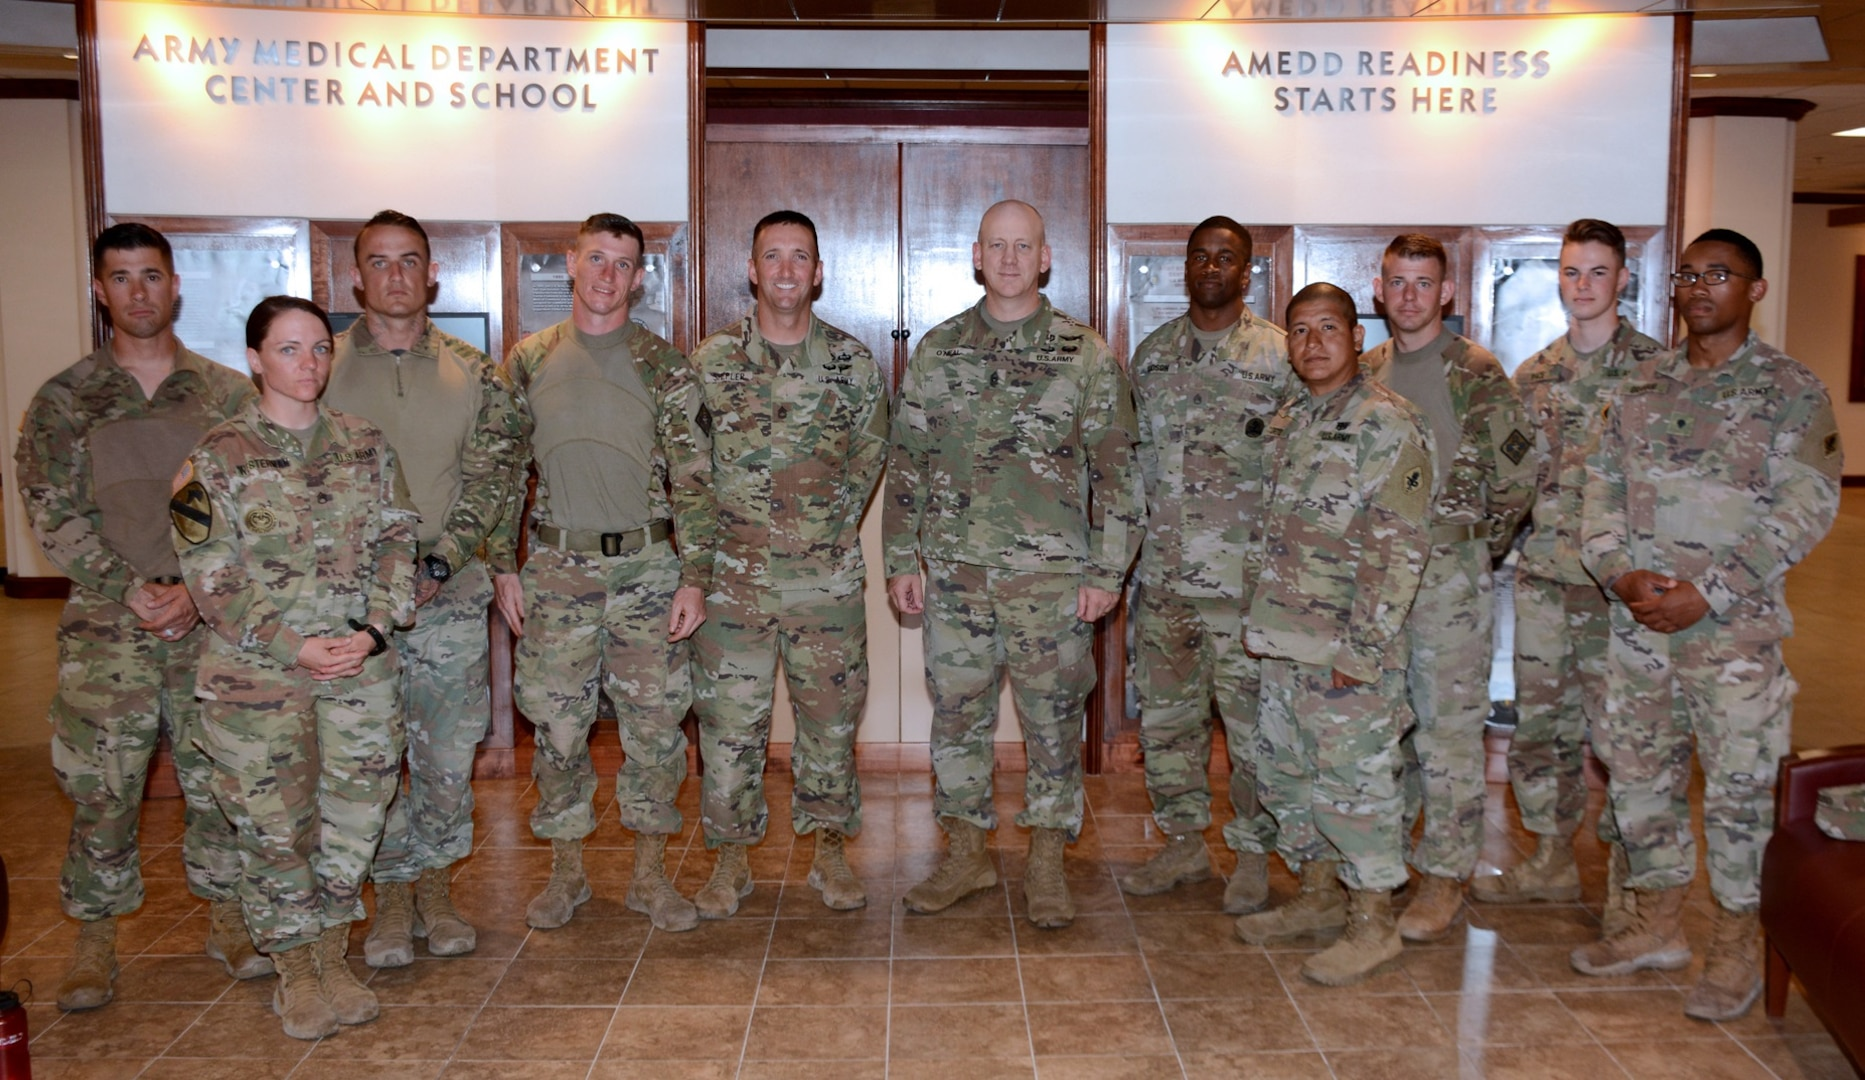 The competitors with Command Sgt. Maj. Buck O'Neal, U.S. Army Medical Department Center and School and Health Readiness Center of Excellence Command Sergeant Major.